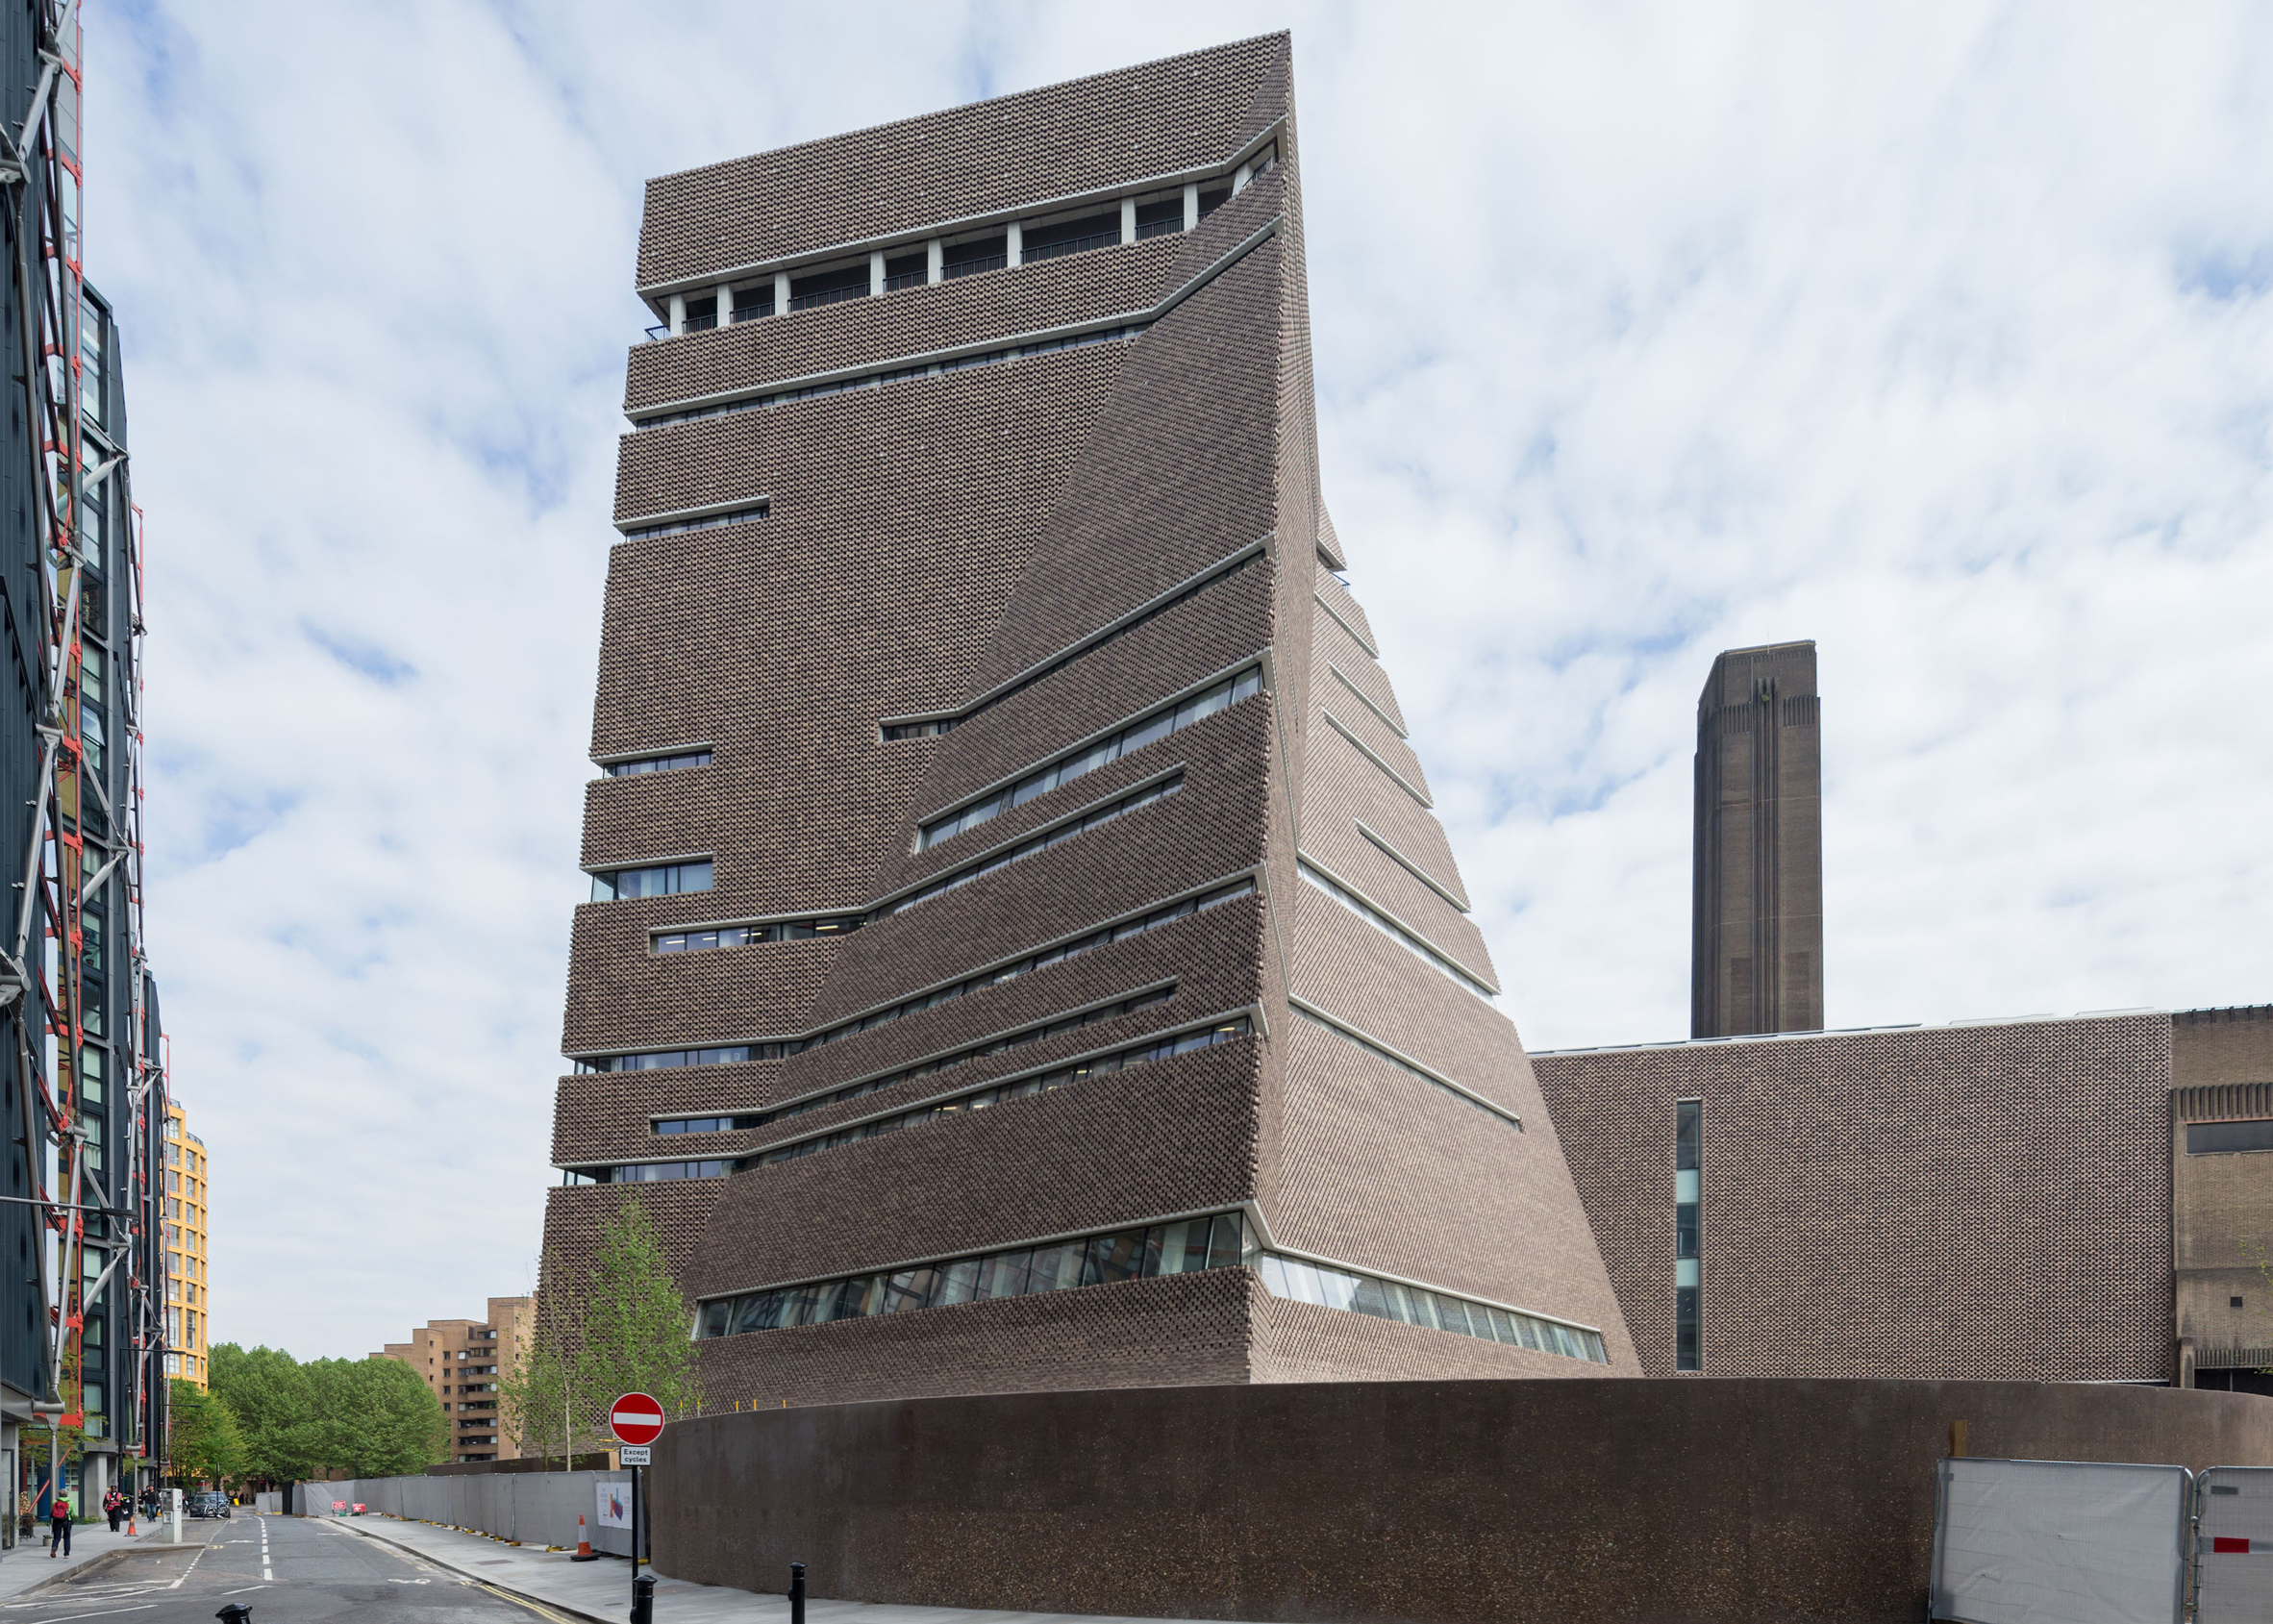 Tate Modern's Switch House extension designed by Herzog & de Meuron. Photograph by Iwan Baan